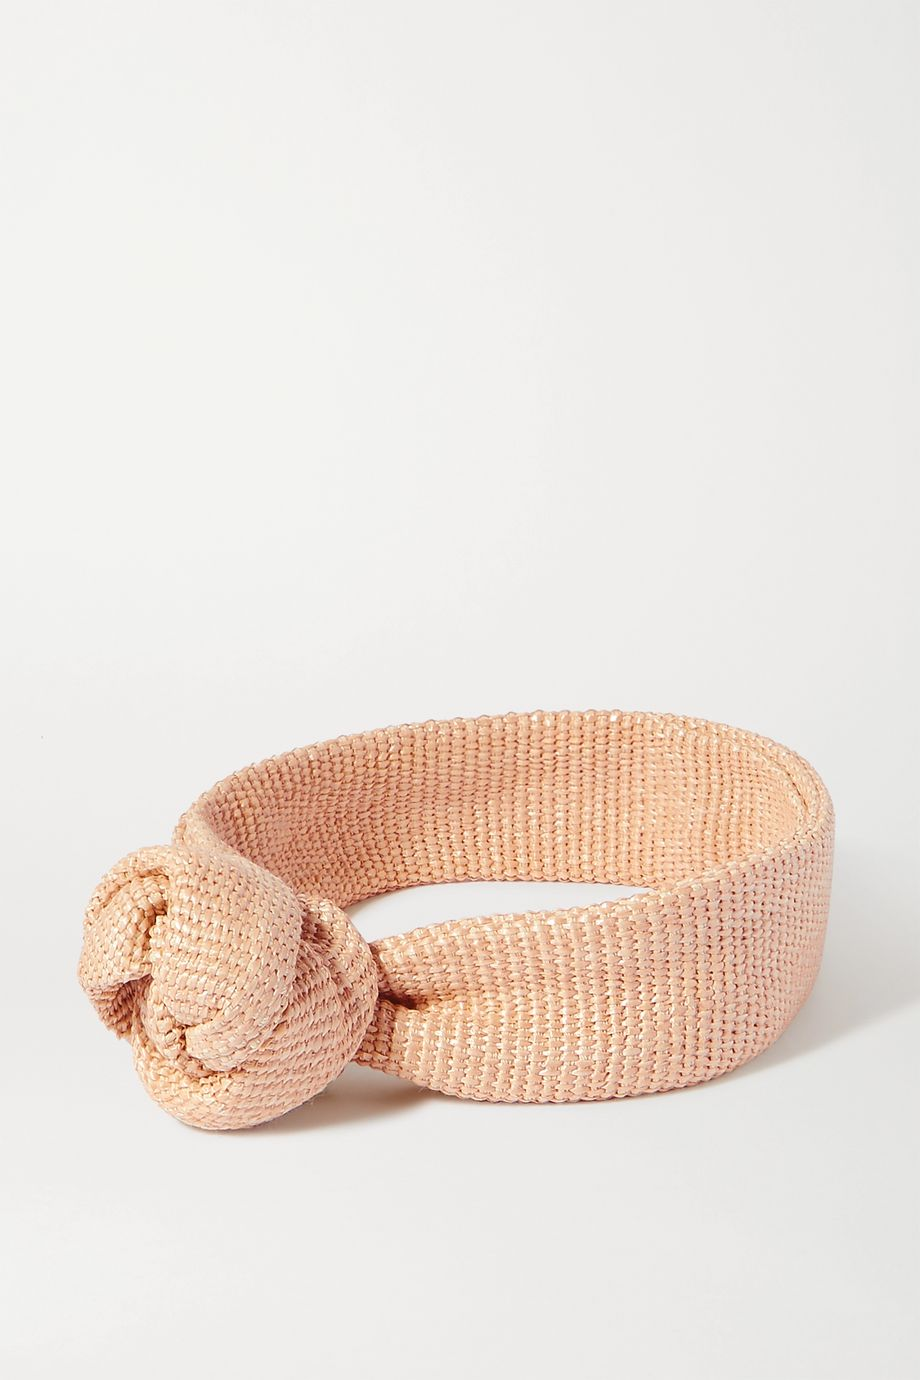 Cult Gaia Turband knotted cotton-blend headband